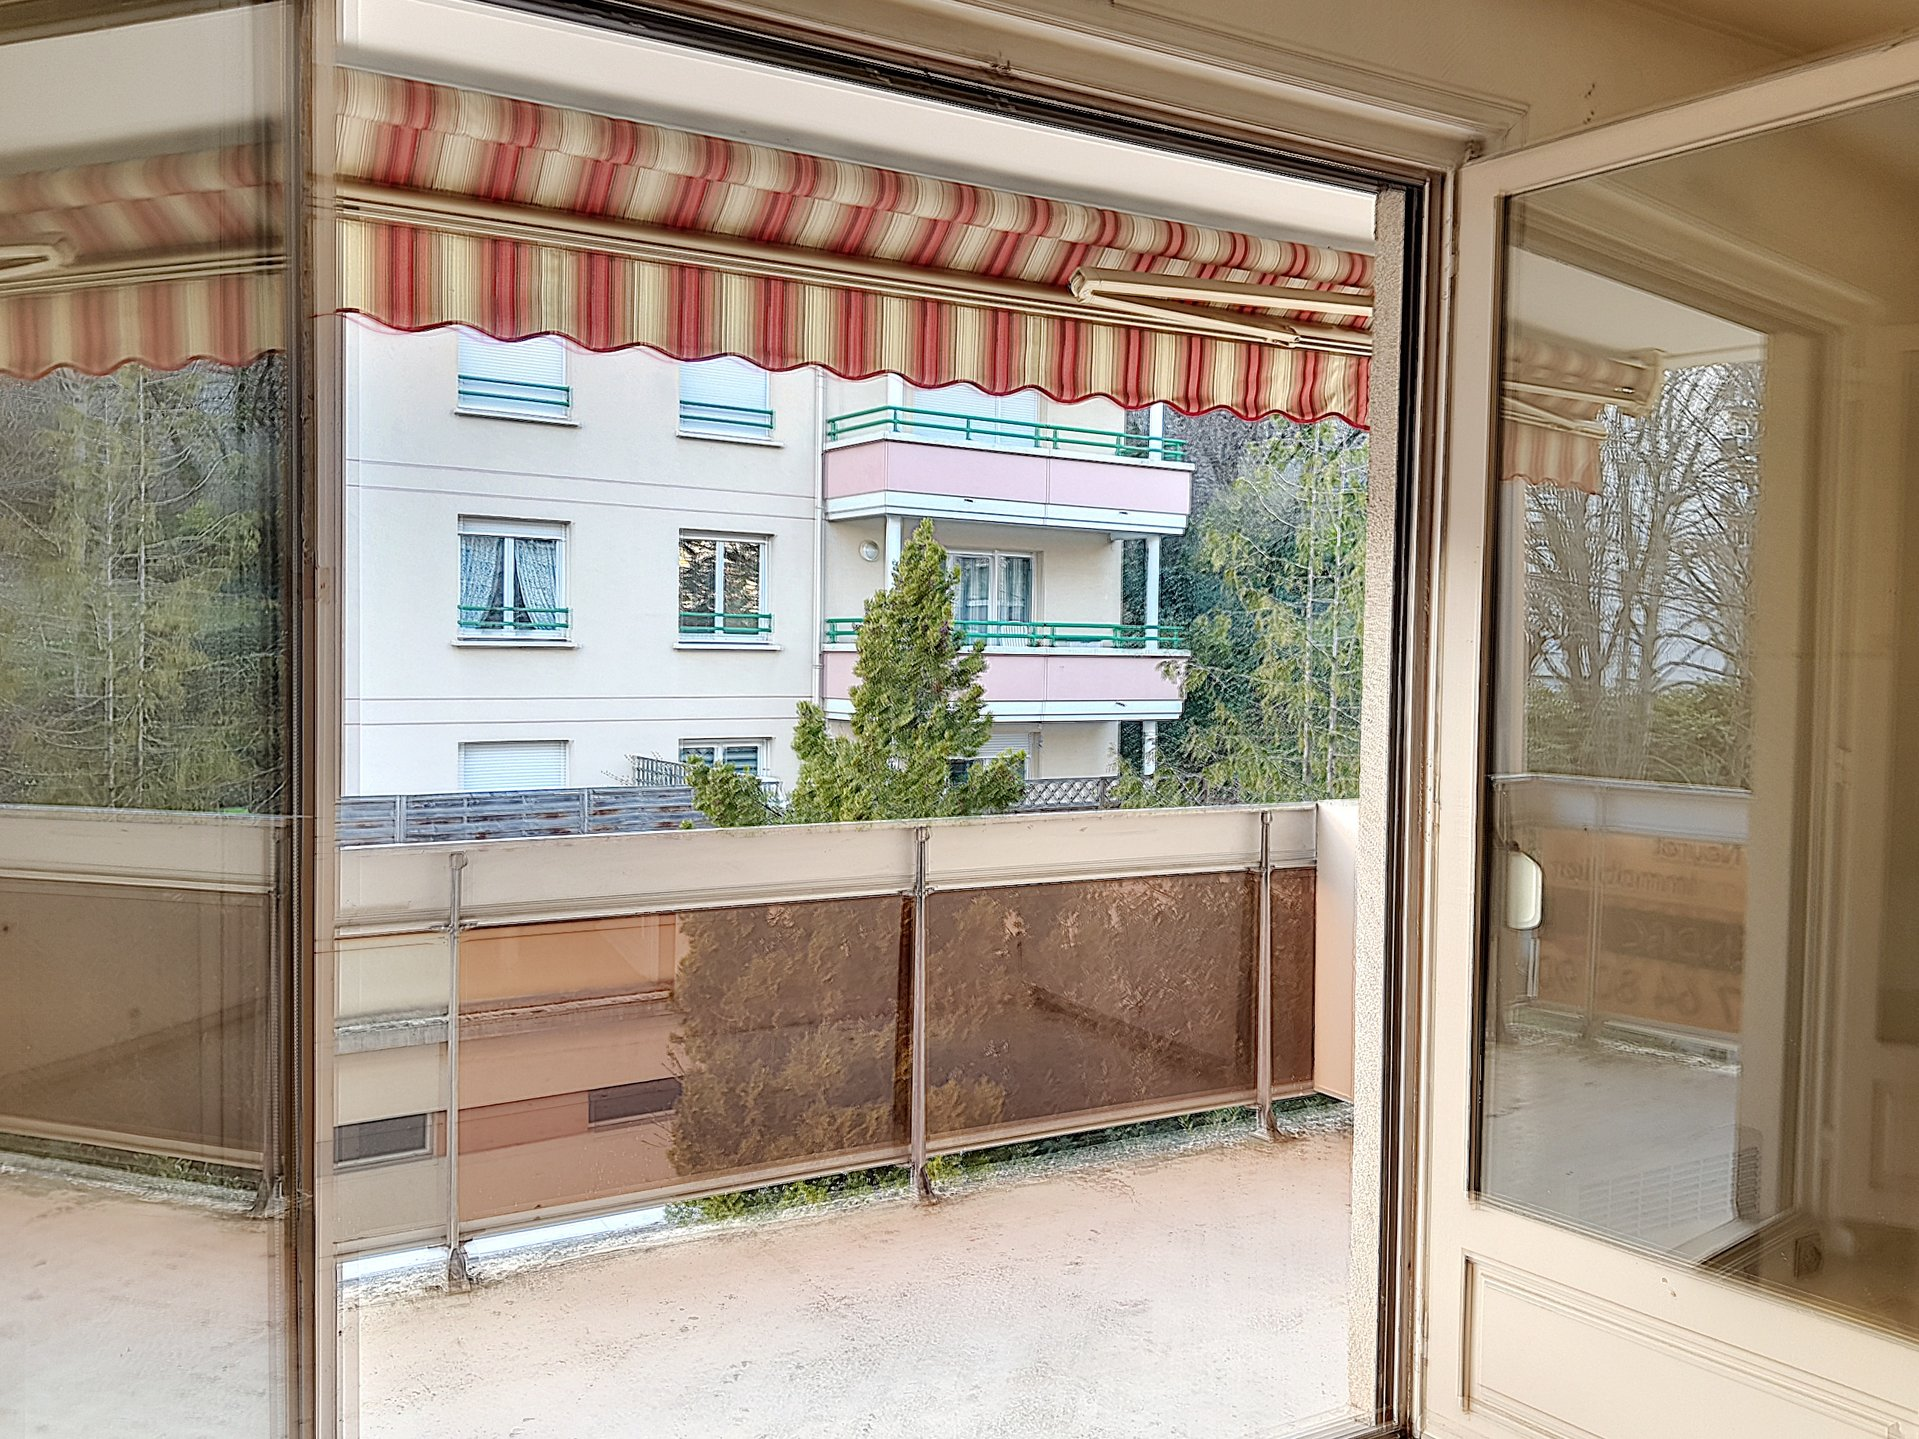 BEL AIR appartement 66M²+PARKING+TERRASSE